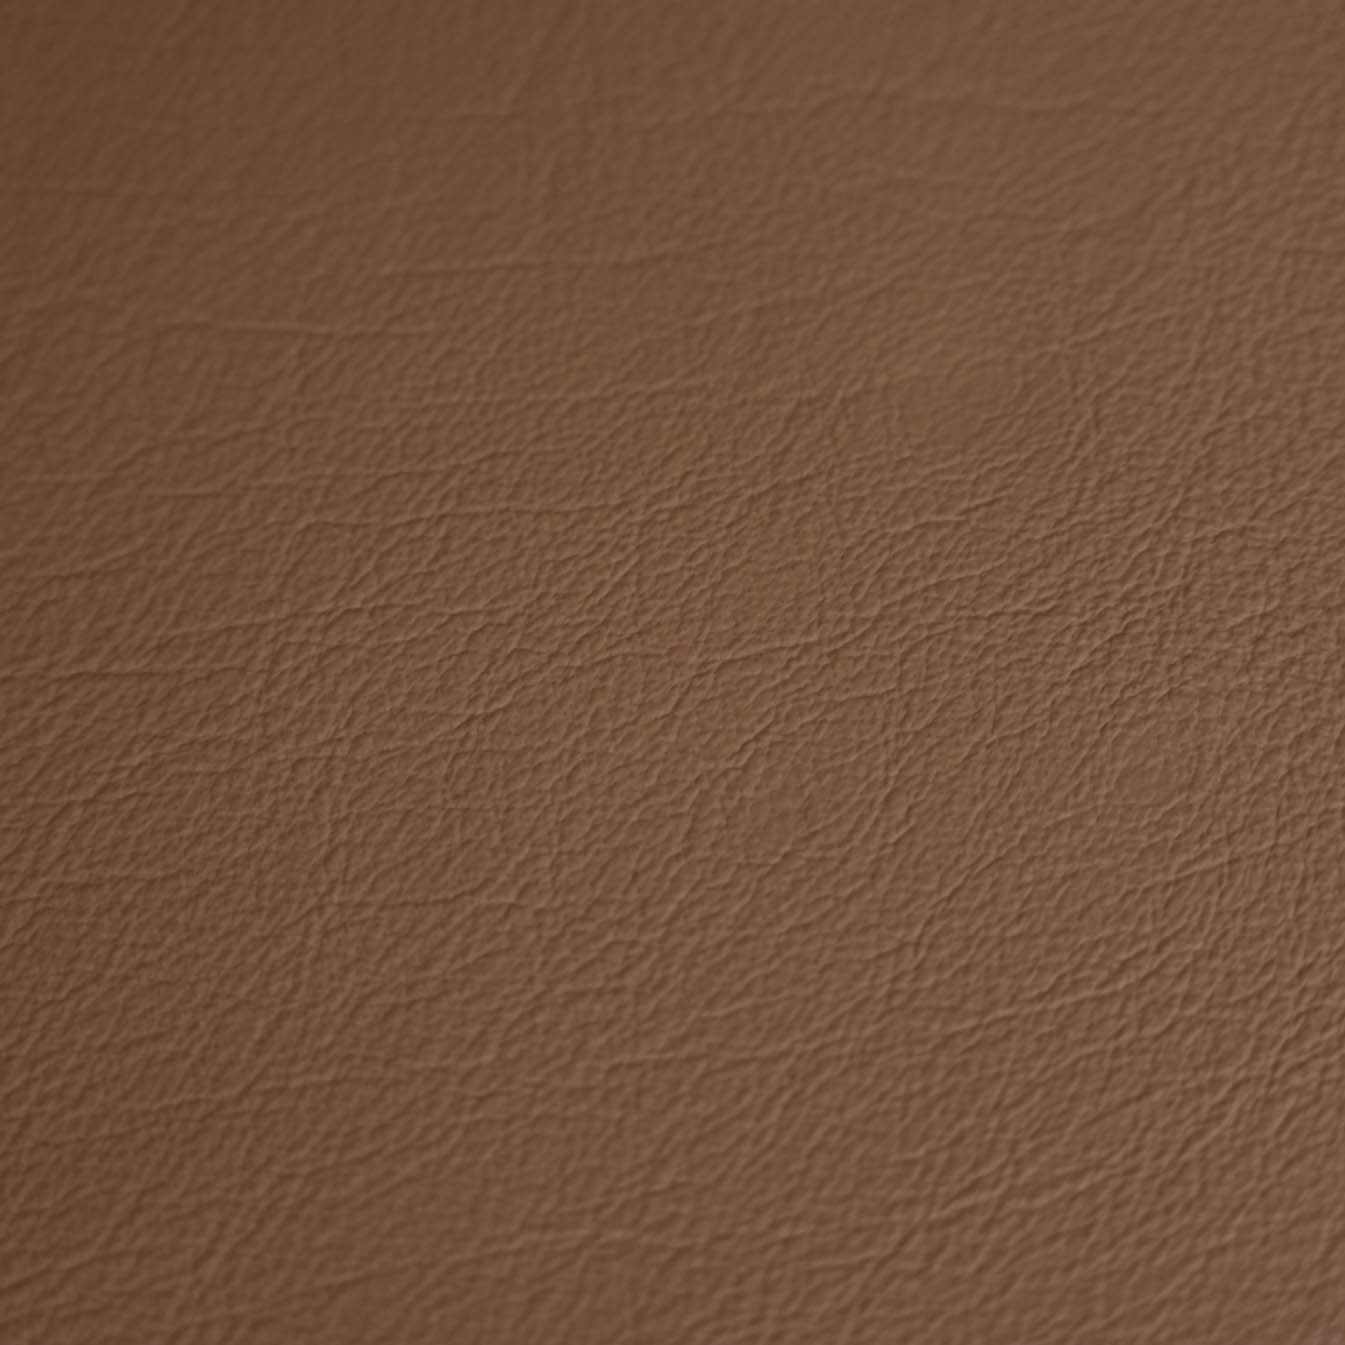 nappa leather in camel color